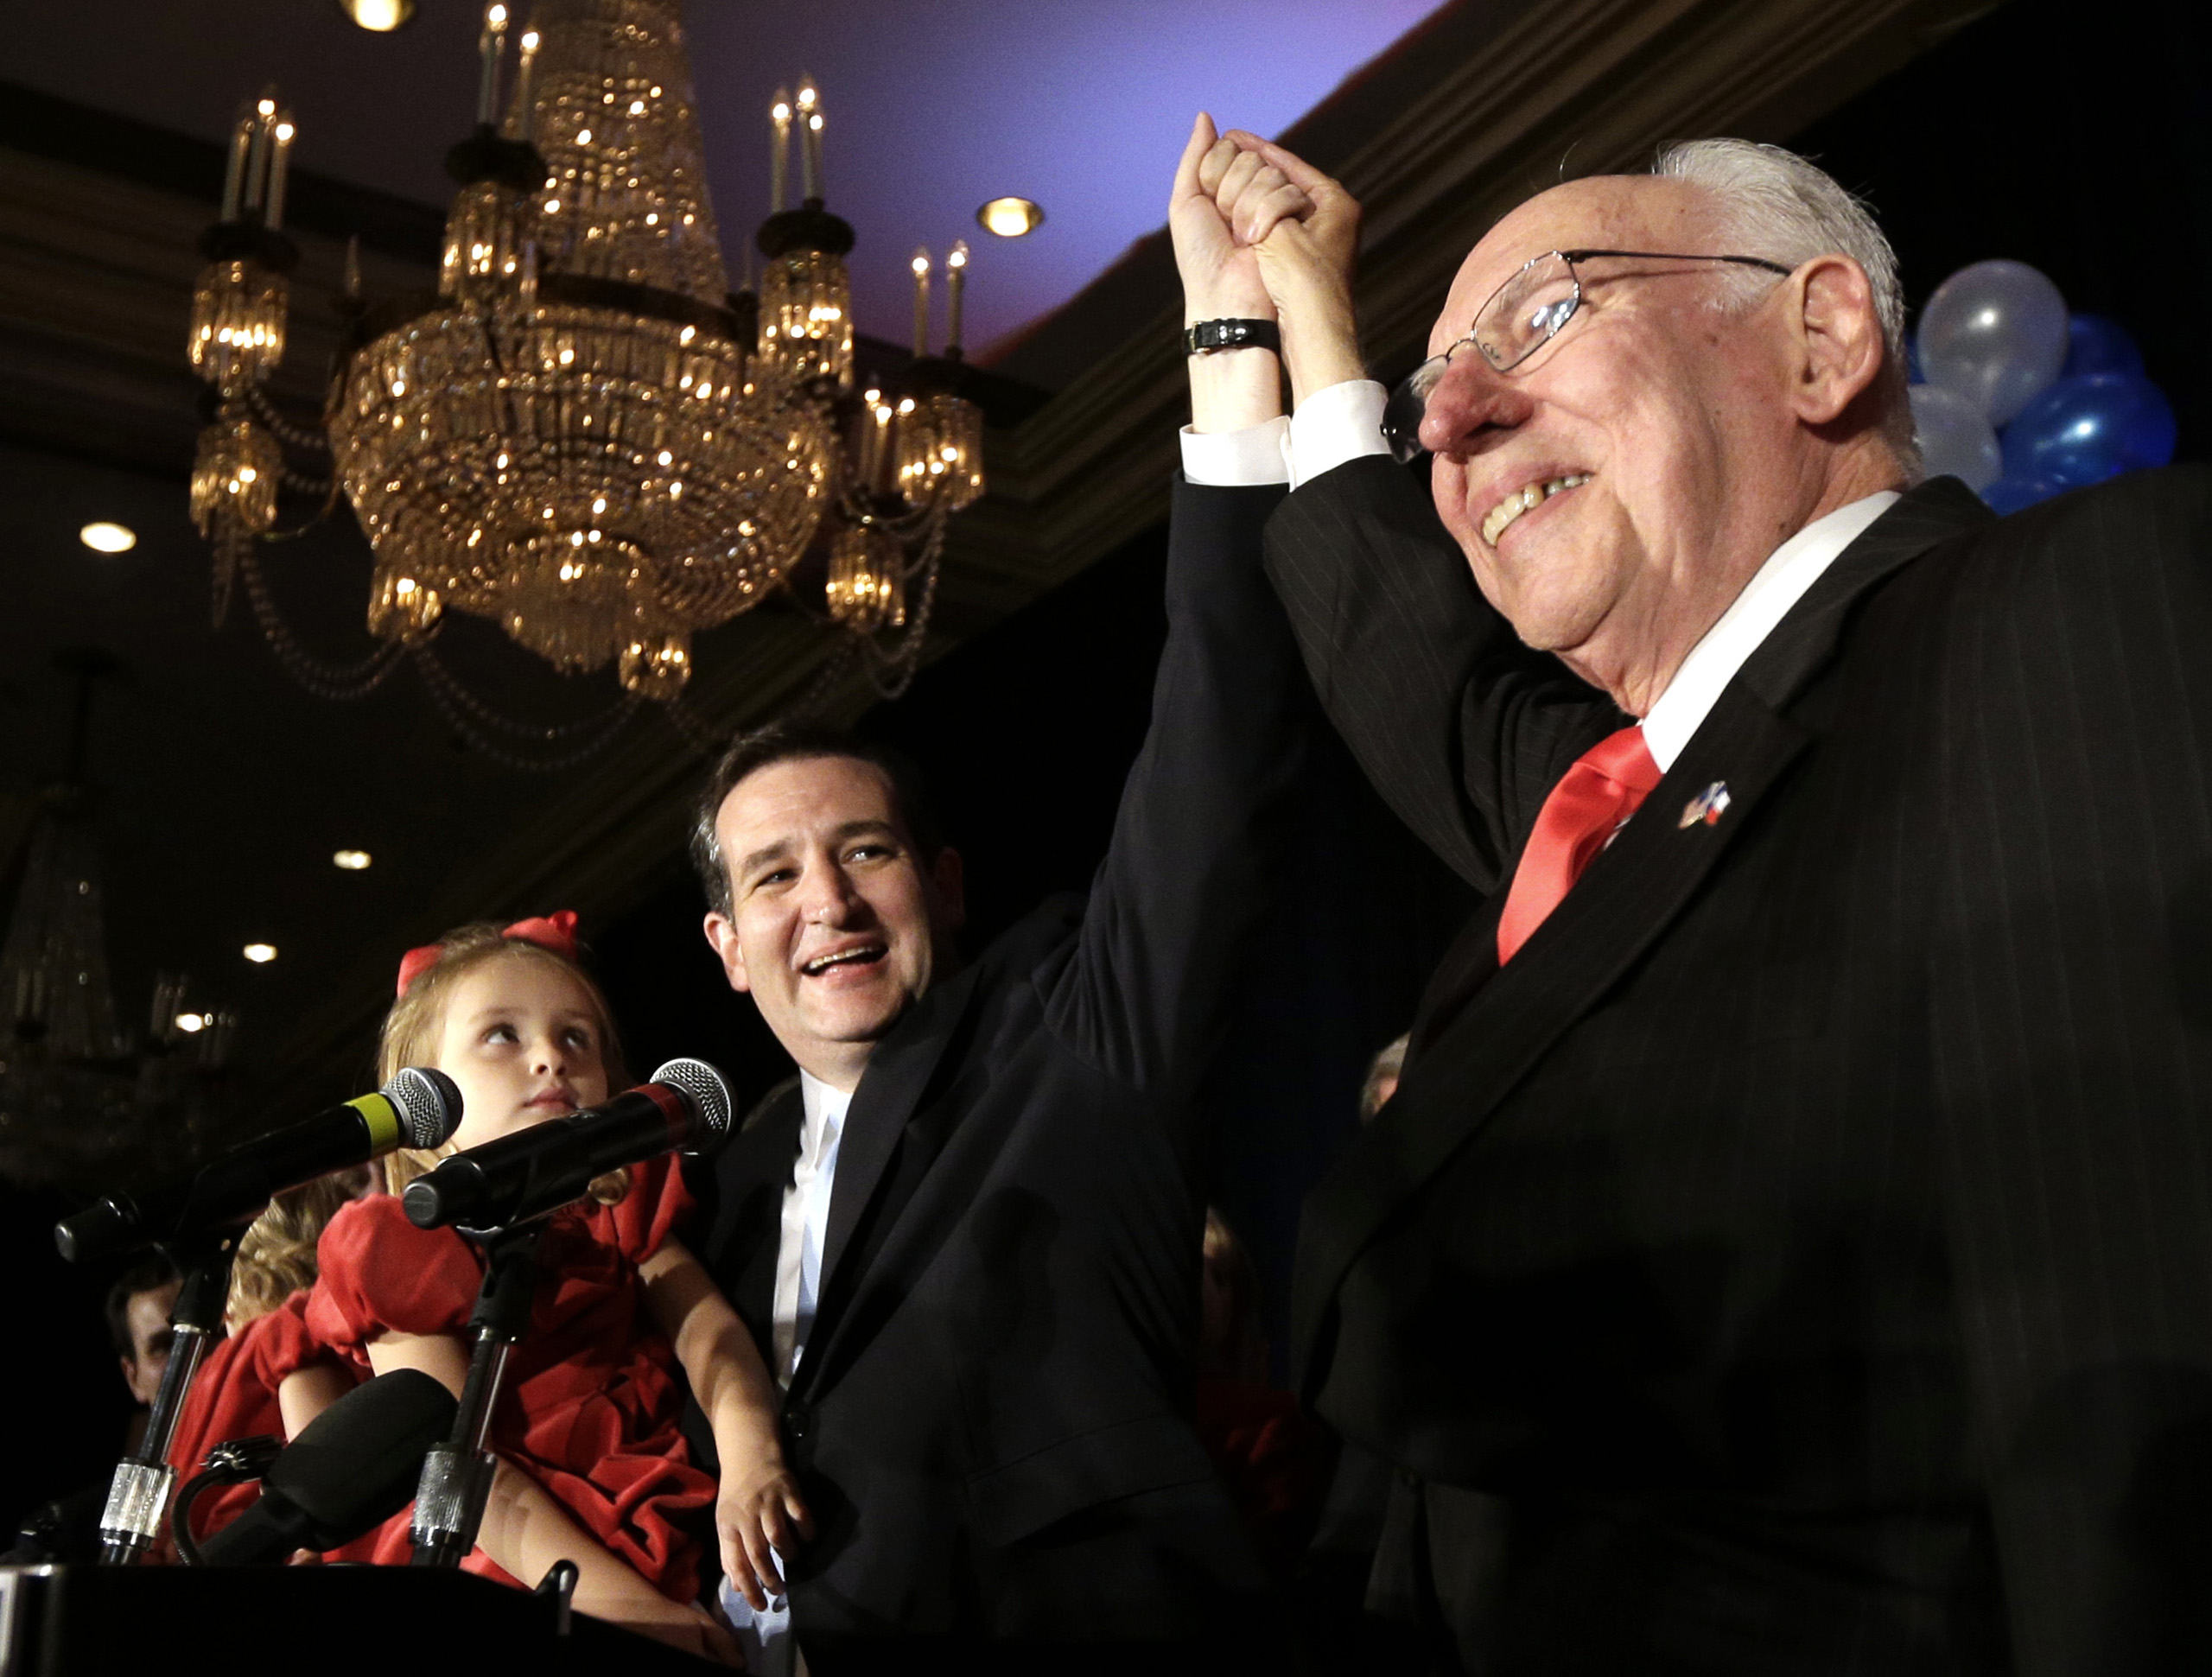 Republican candidate for U.S. Senate Ted Cruz, left, raises his hand with his father Rafael, right, while holding his daughter Caroline during a victory speech after being elected in Houston on Nov. 6, 2012.